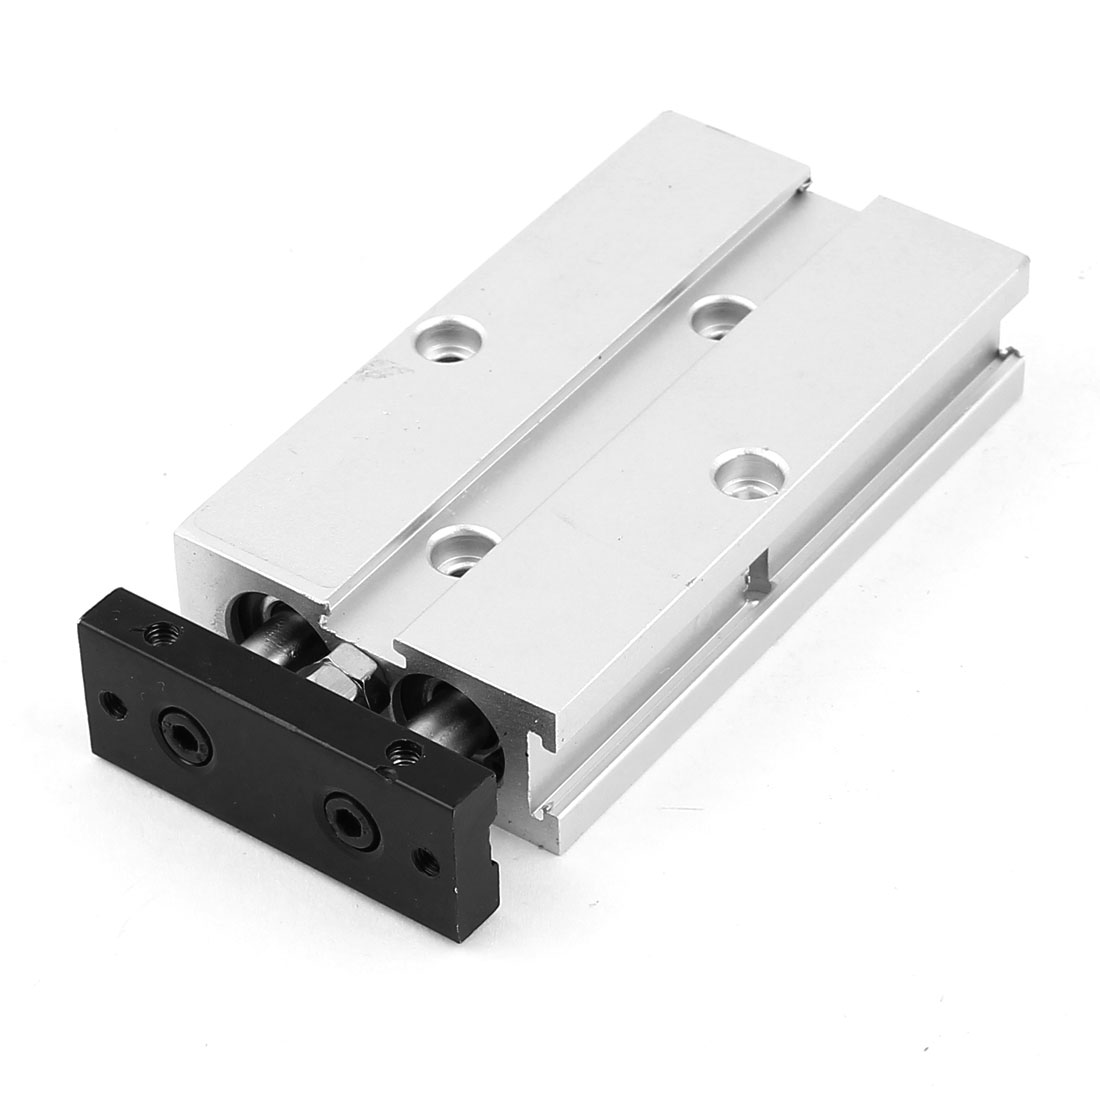 TN10x30 10mm Bore 30mm Stroke Double Rod Aluminum Alloy Pneumatic Air Cylinder